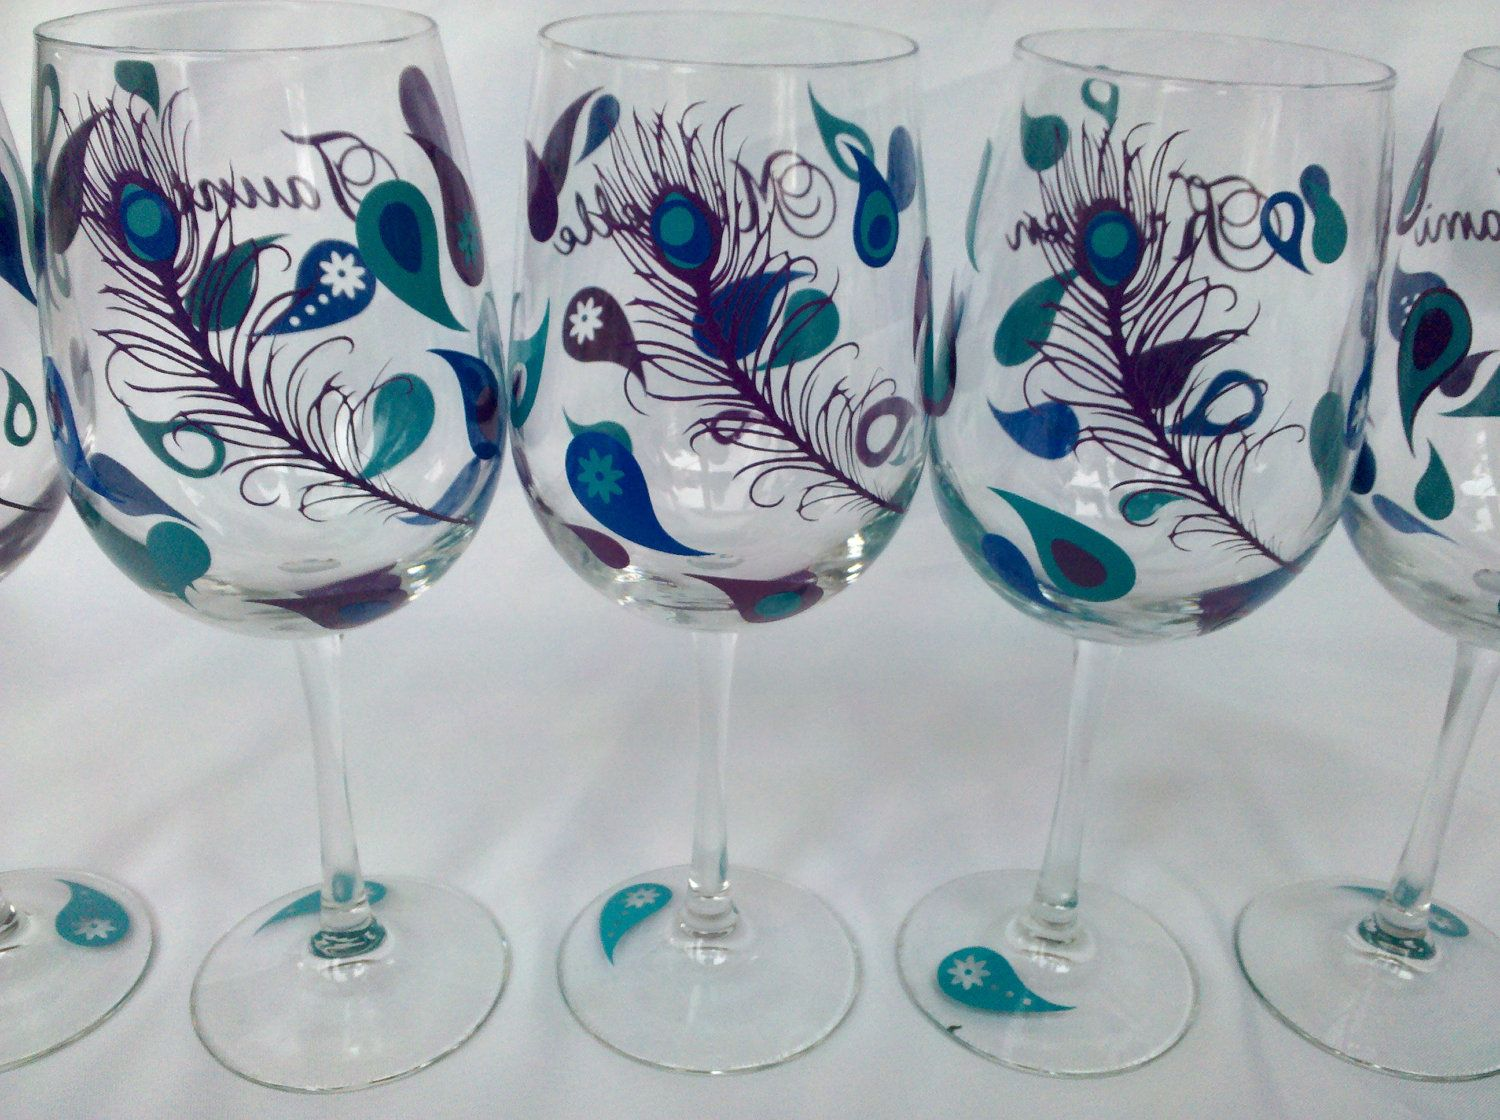 How to decorate wine glasses for bridesmaids - Ooo Want To Make These Peacock Wine Glasses 3 Bridesmaid Wine Glasses For Wedding Party